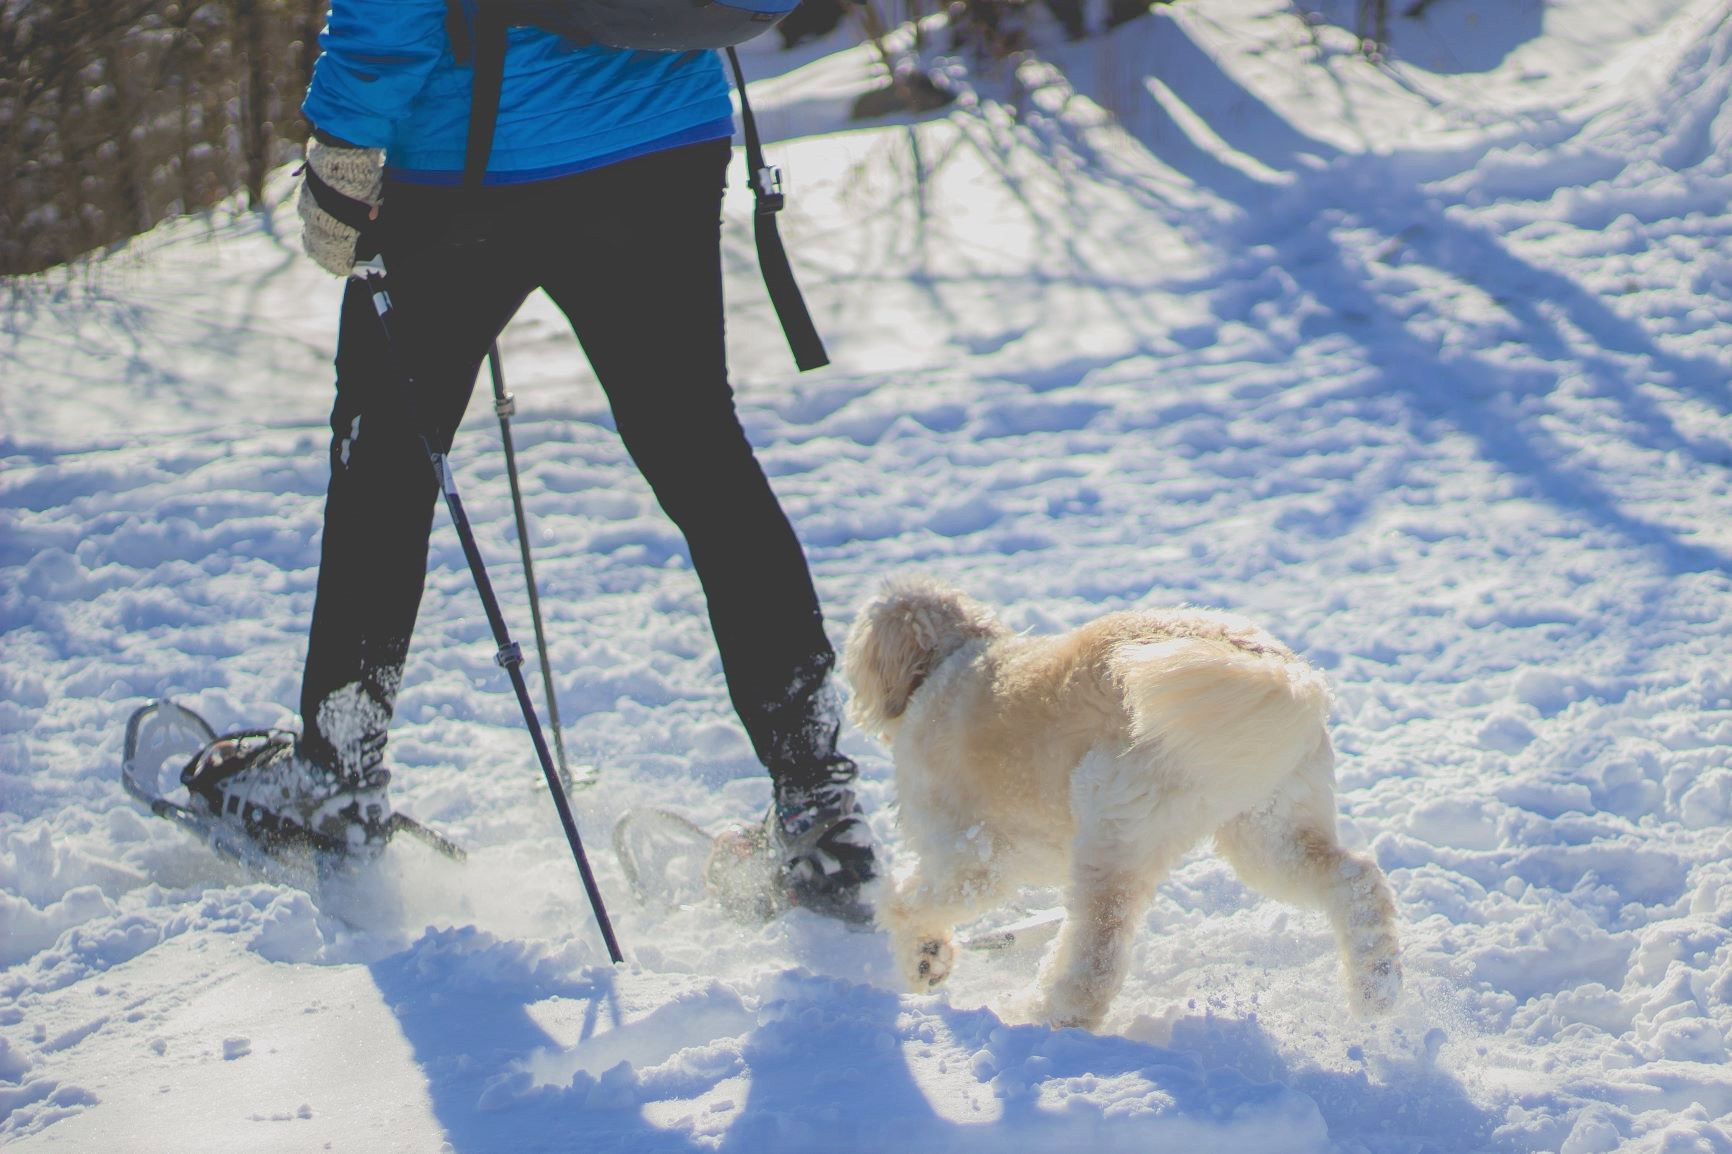 walking with dog in winter